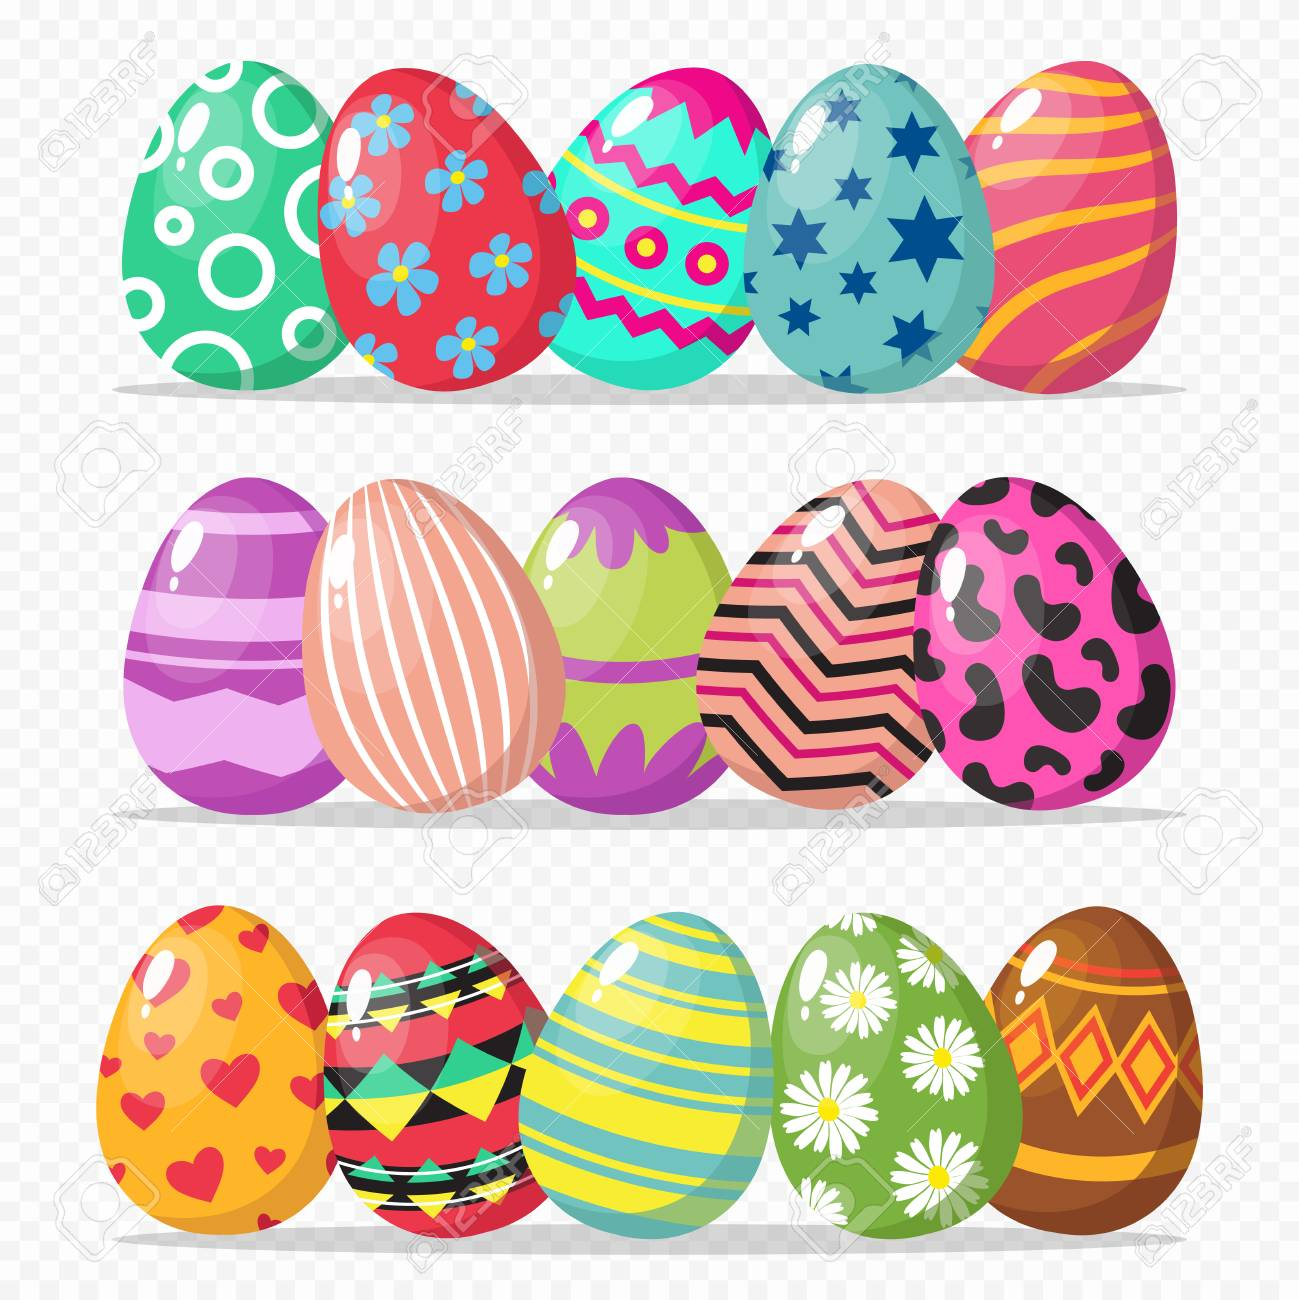 Coloring Easter Eggs Vector Isolated On Transparent Background Royalty Free Cliparts Vectors And Stock Illustration Image 117140741